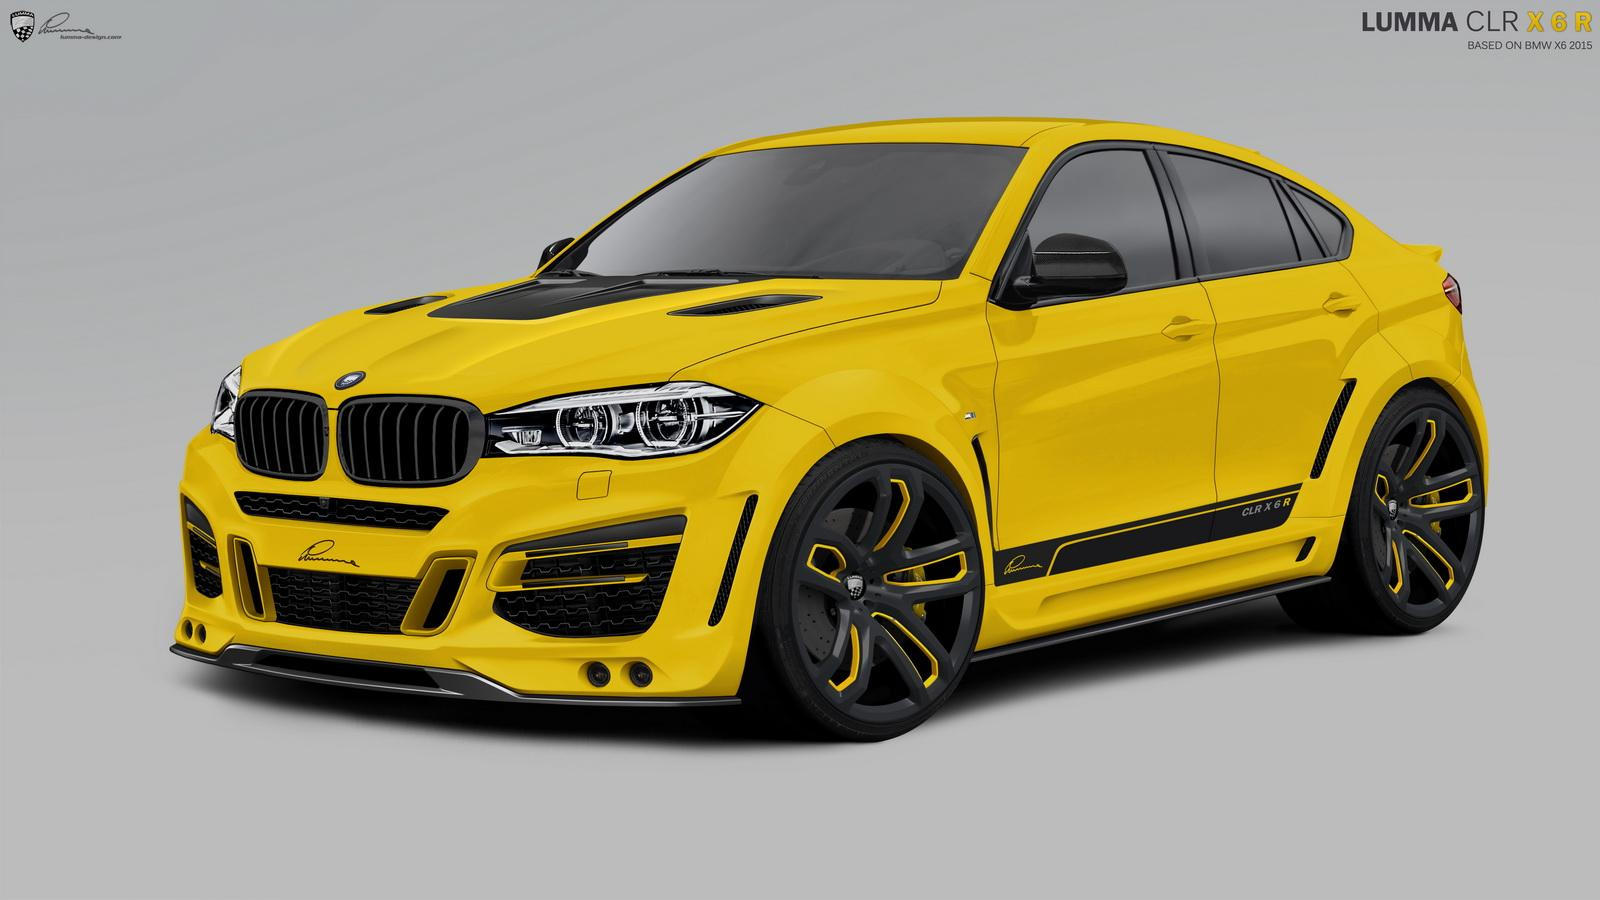 2015 Bmw X6 Tuning Program By Lumma Design